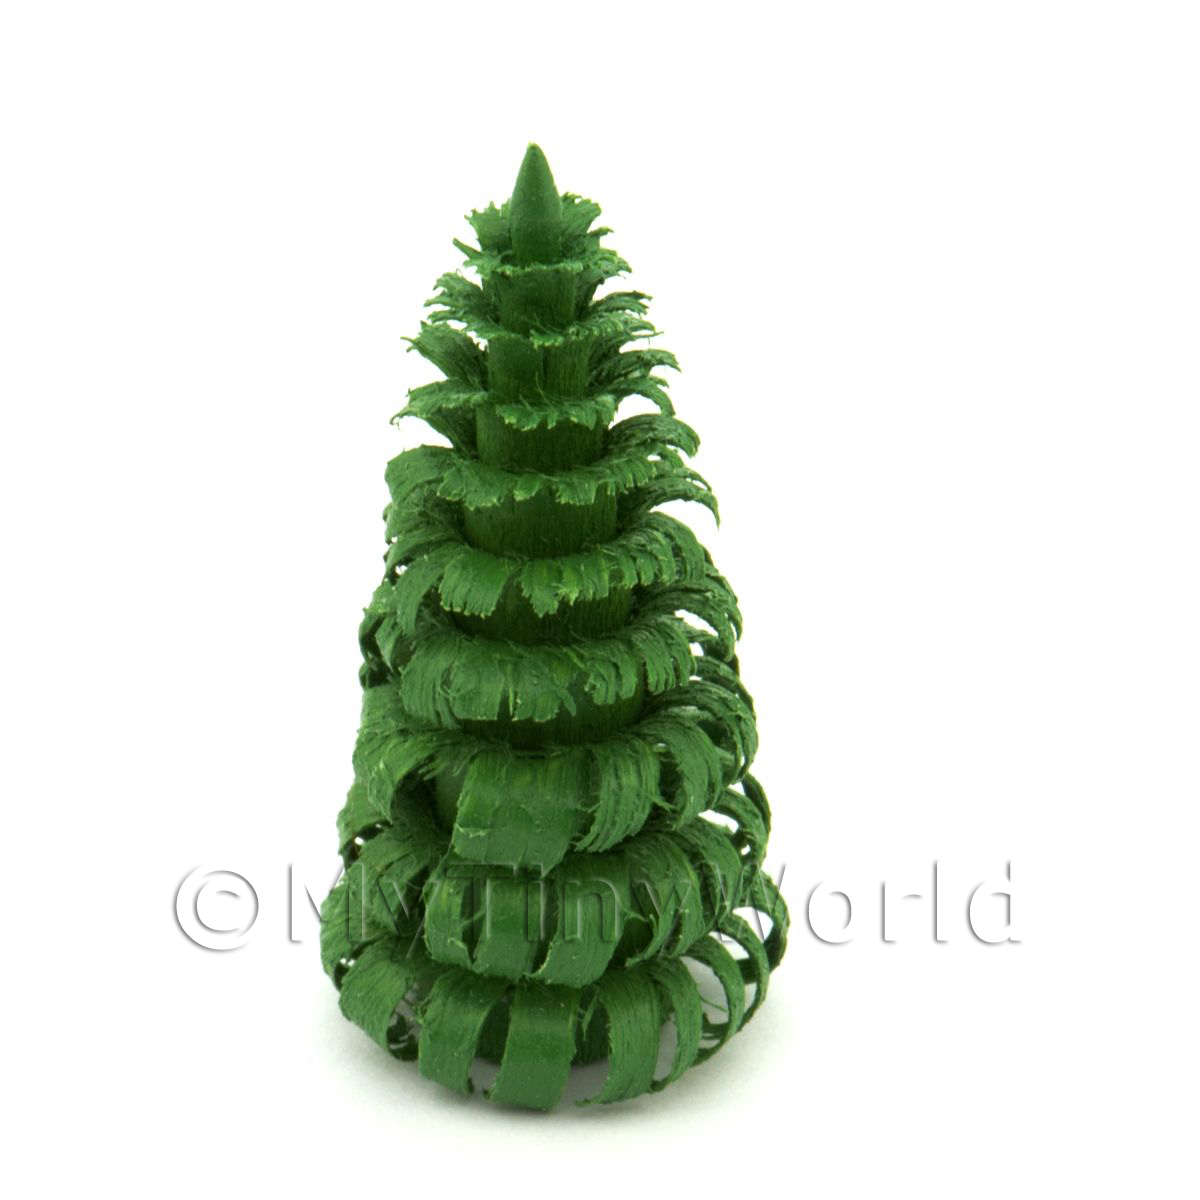 Dolls House Miniature 40mm Green Tree